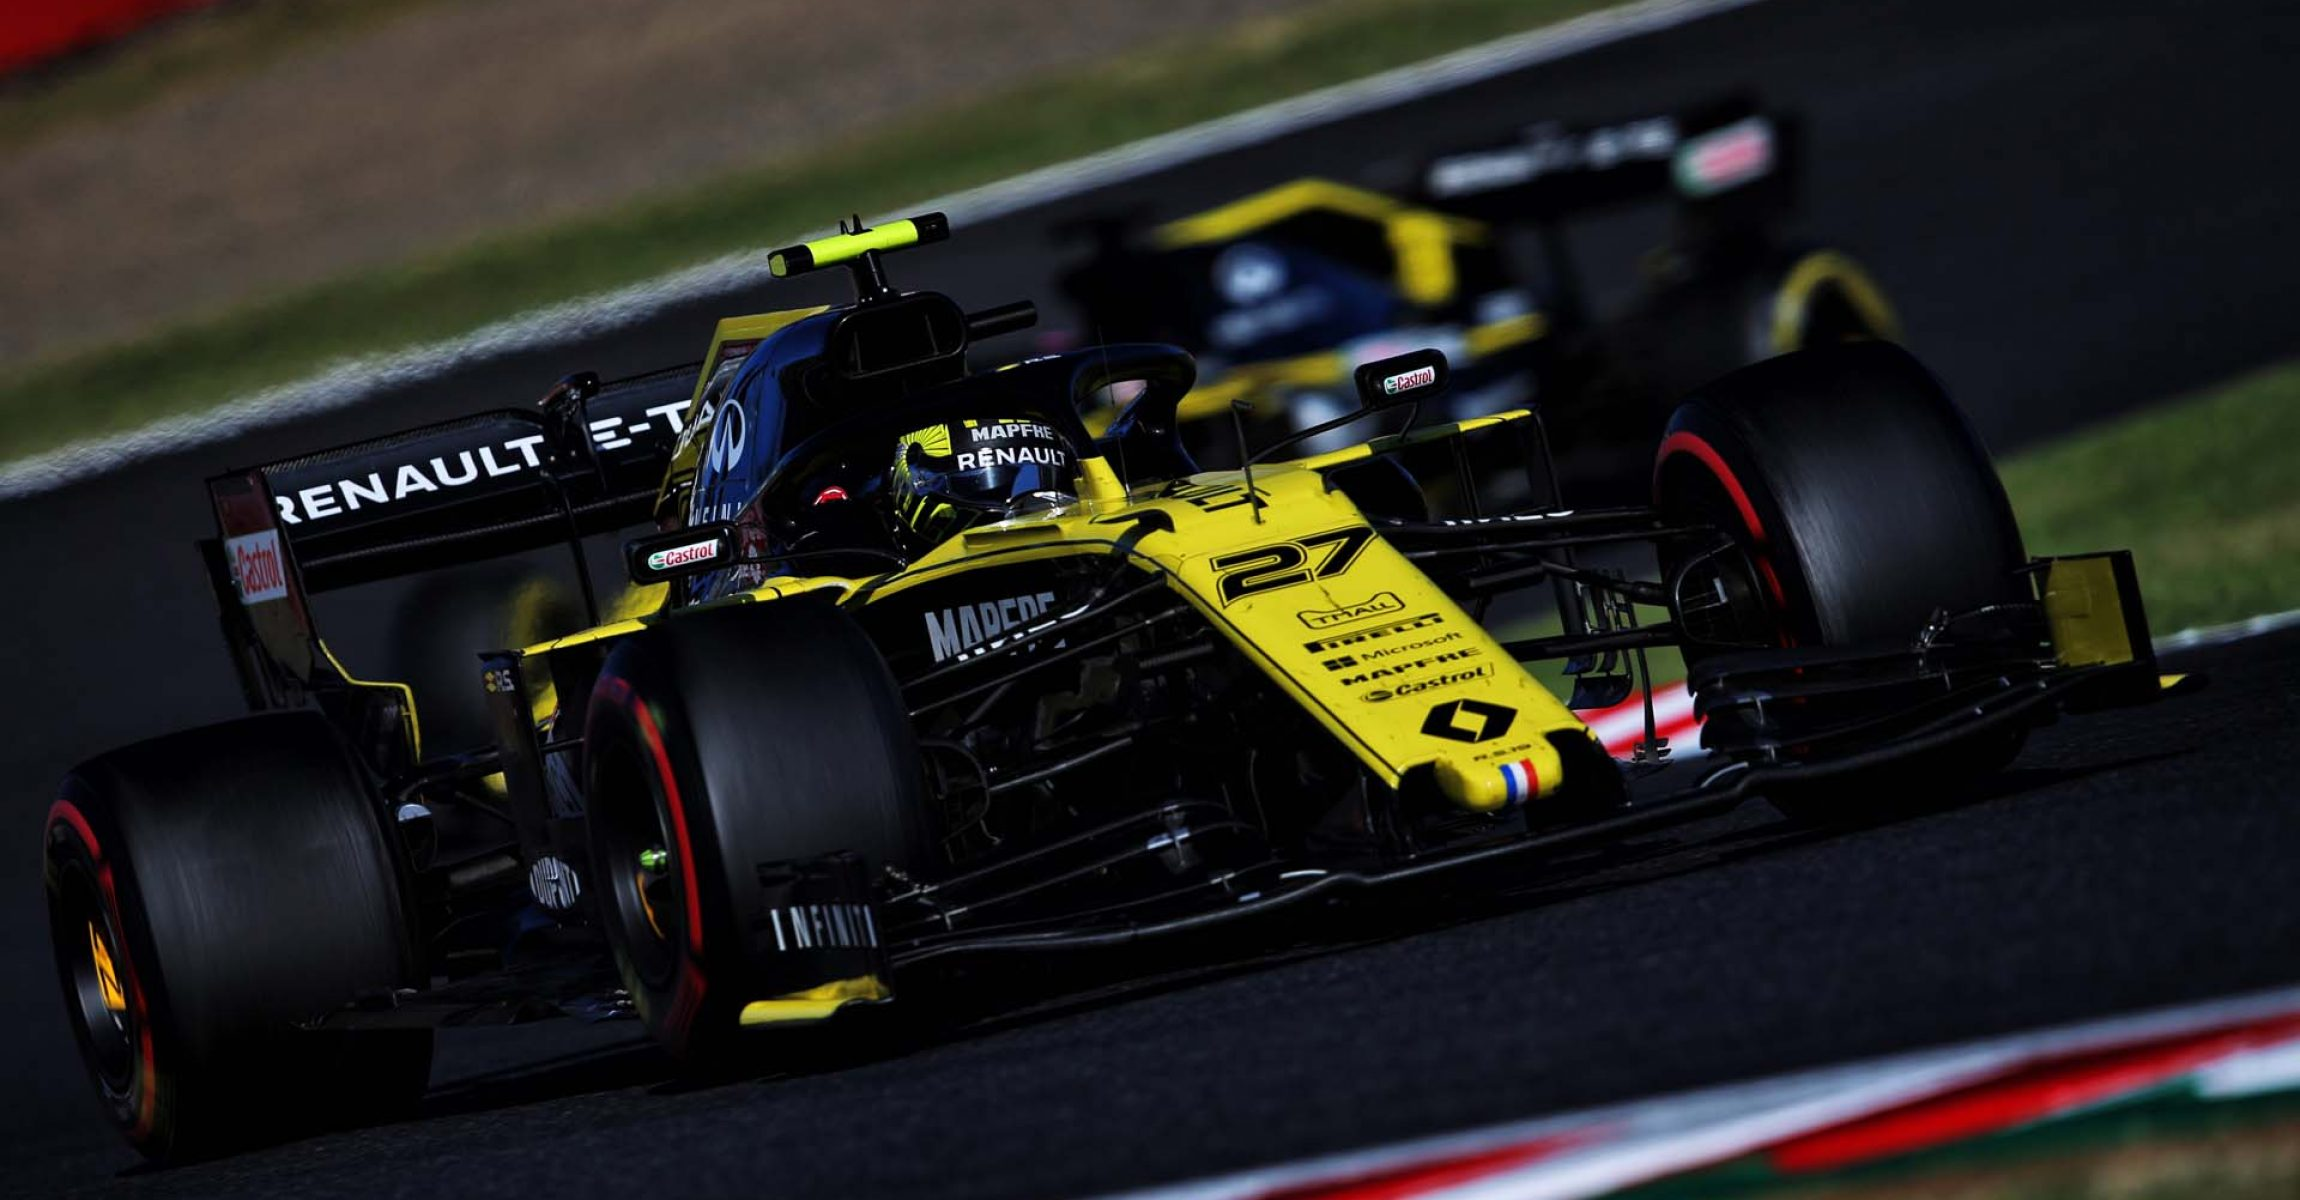 Nico Hülkenberg (GER) Renault F1 Team RS19. Japanese Grand Prix, Sunday 13th October 2019. Suzuka, Japan.